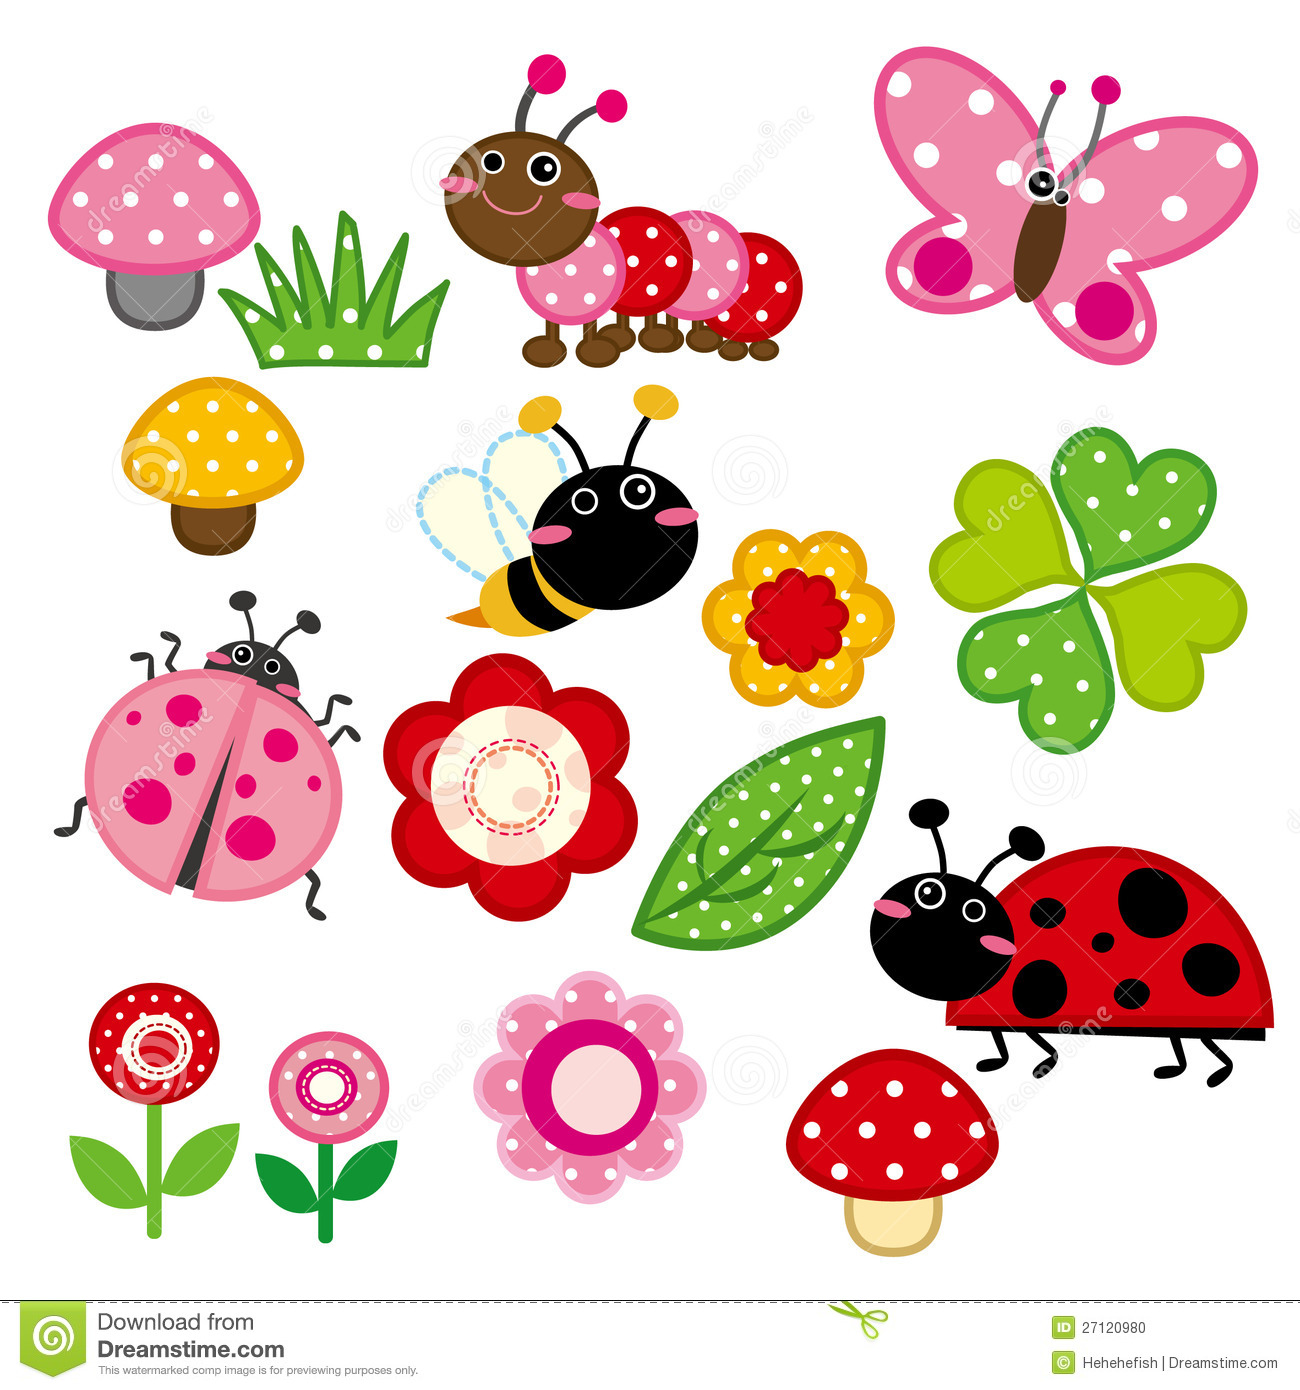 Cute garden insect stock photo image 27120980 for Arthouse jardin wallpaper